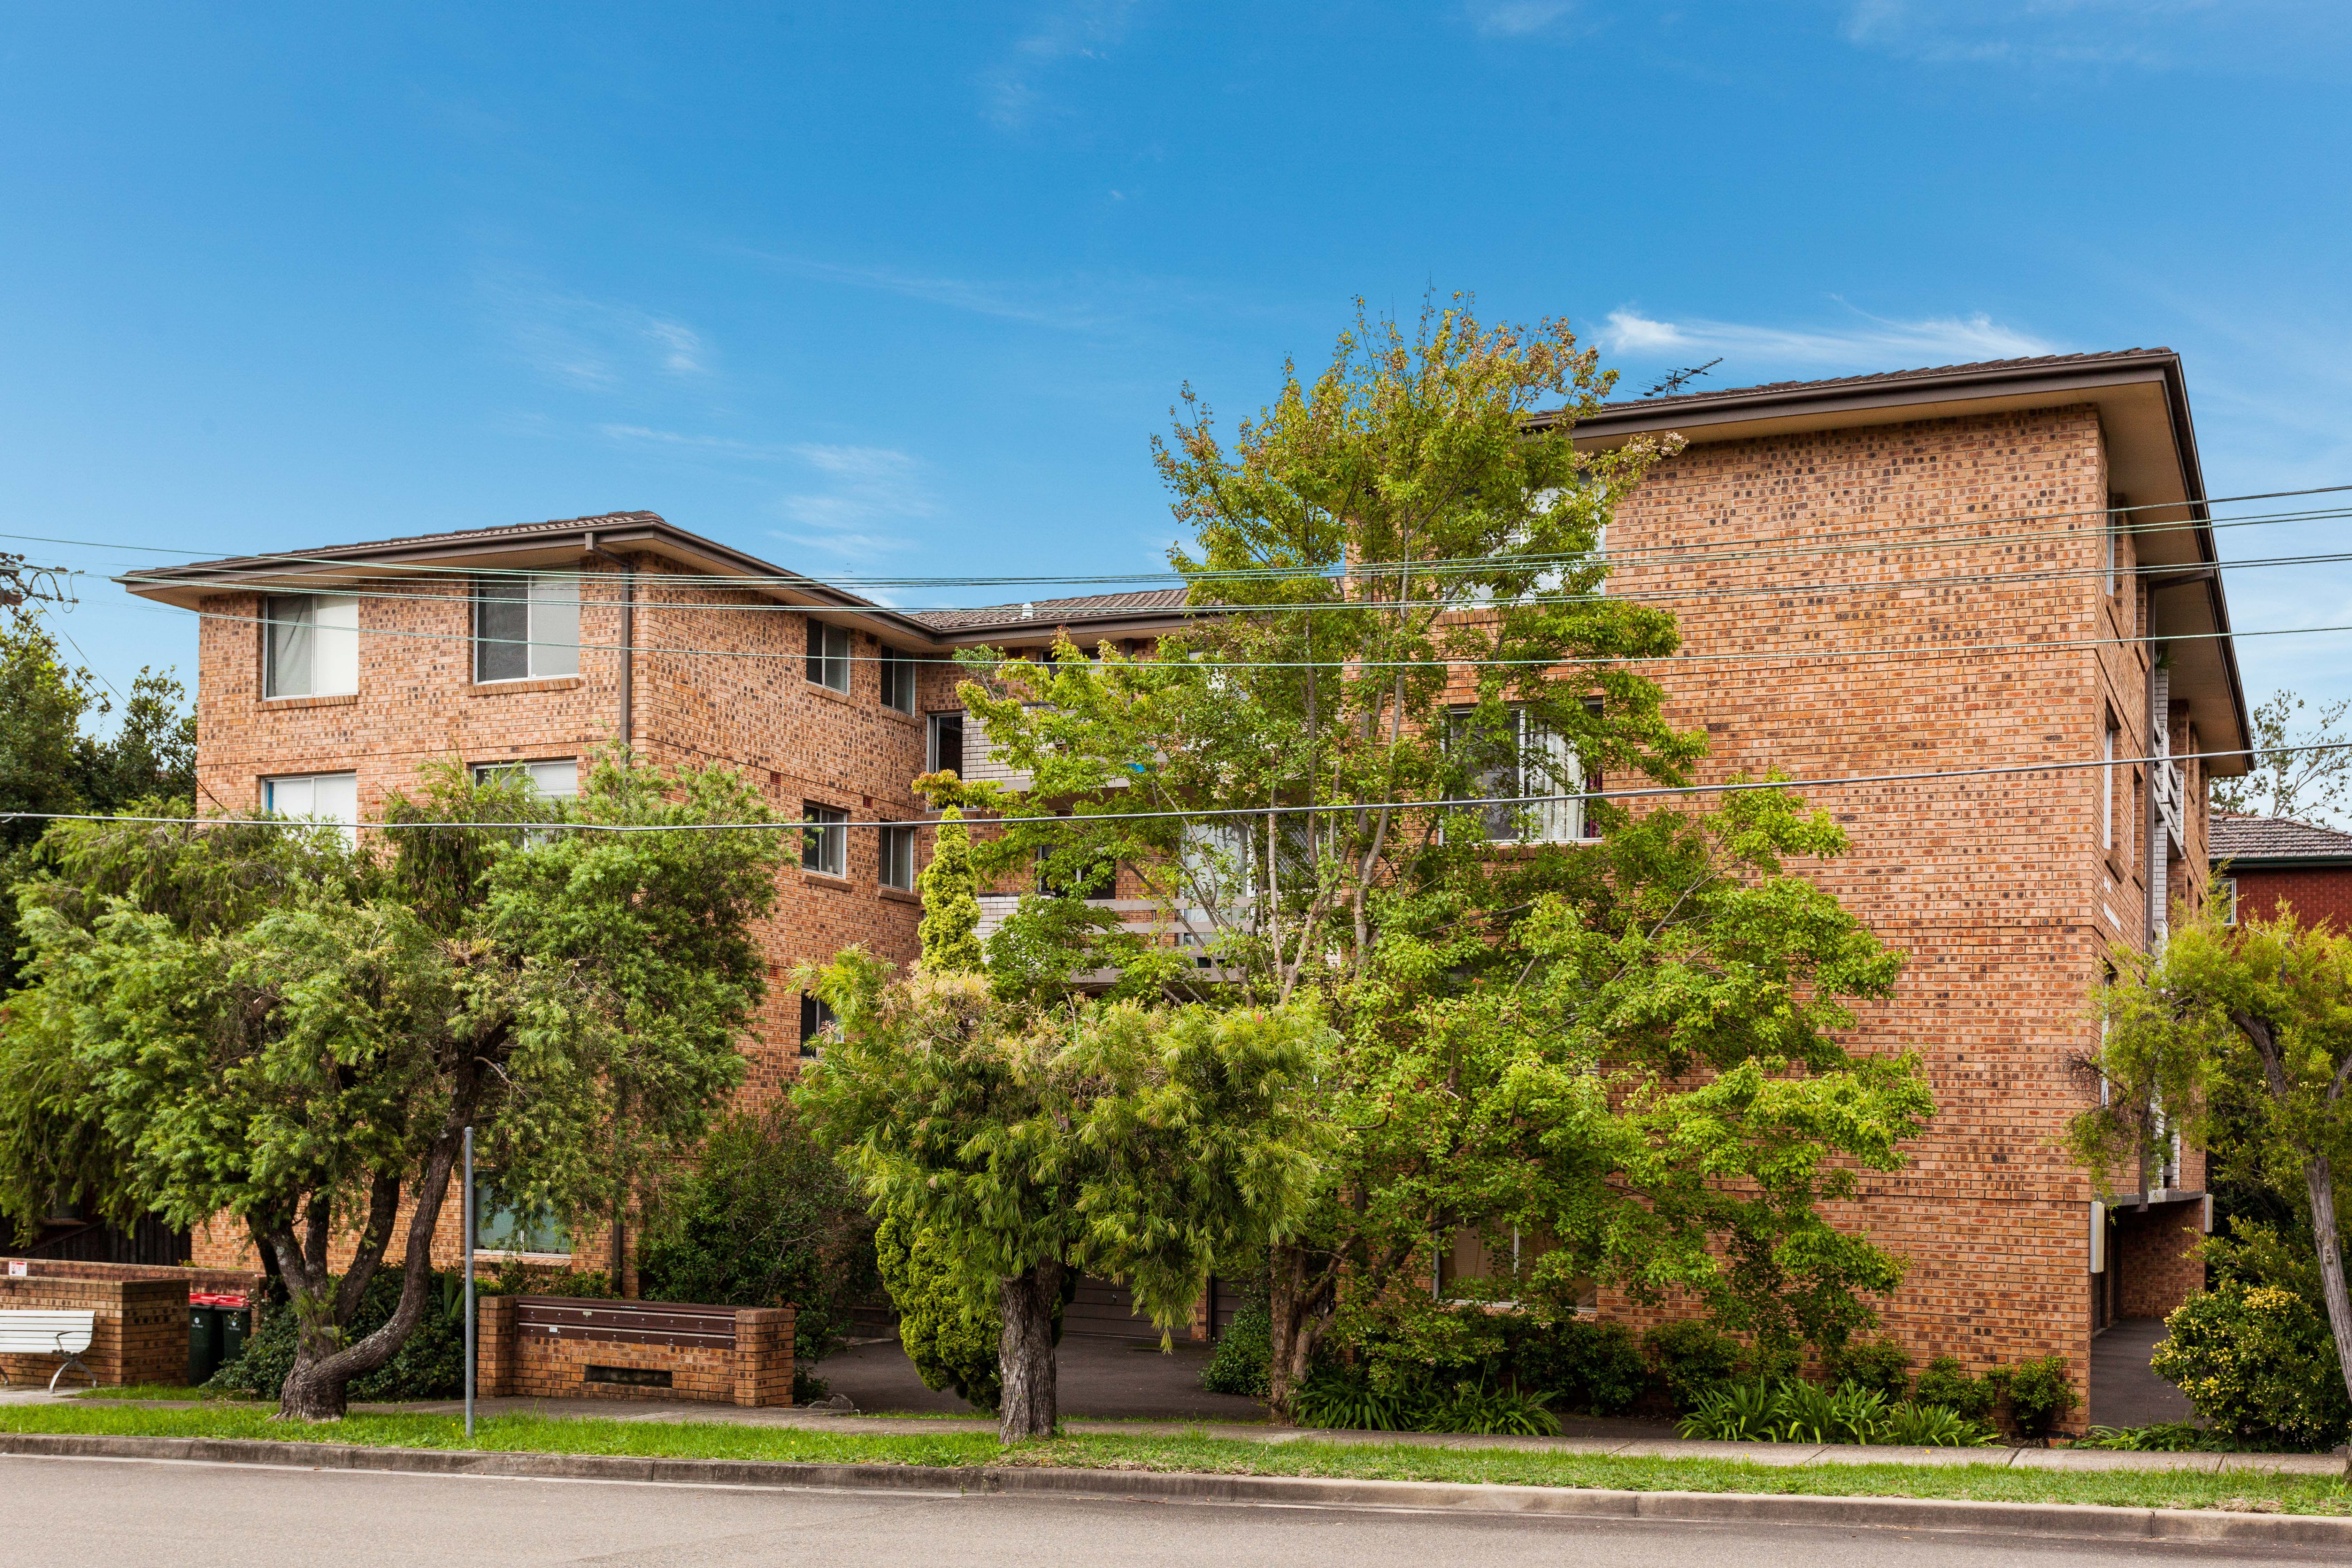 13/18-20 Orchard Street, West Ryde NSW 2114